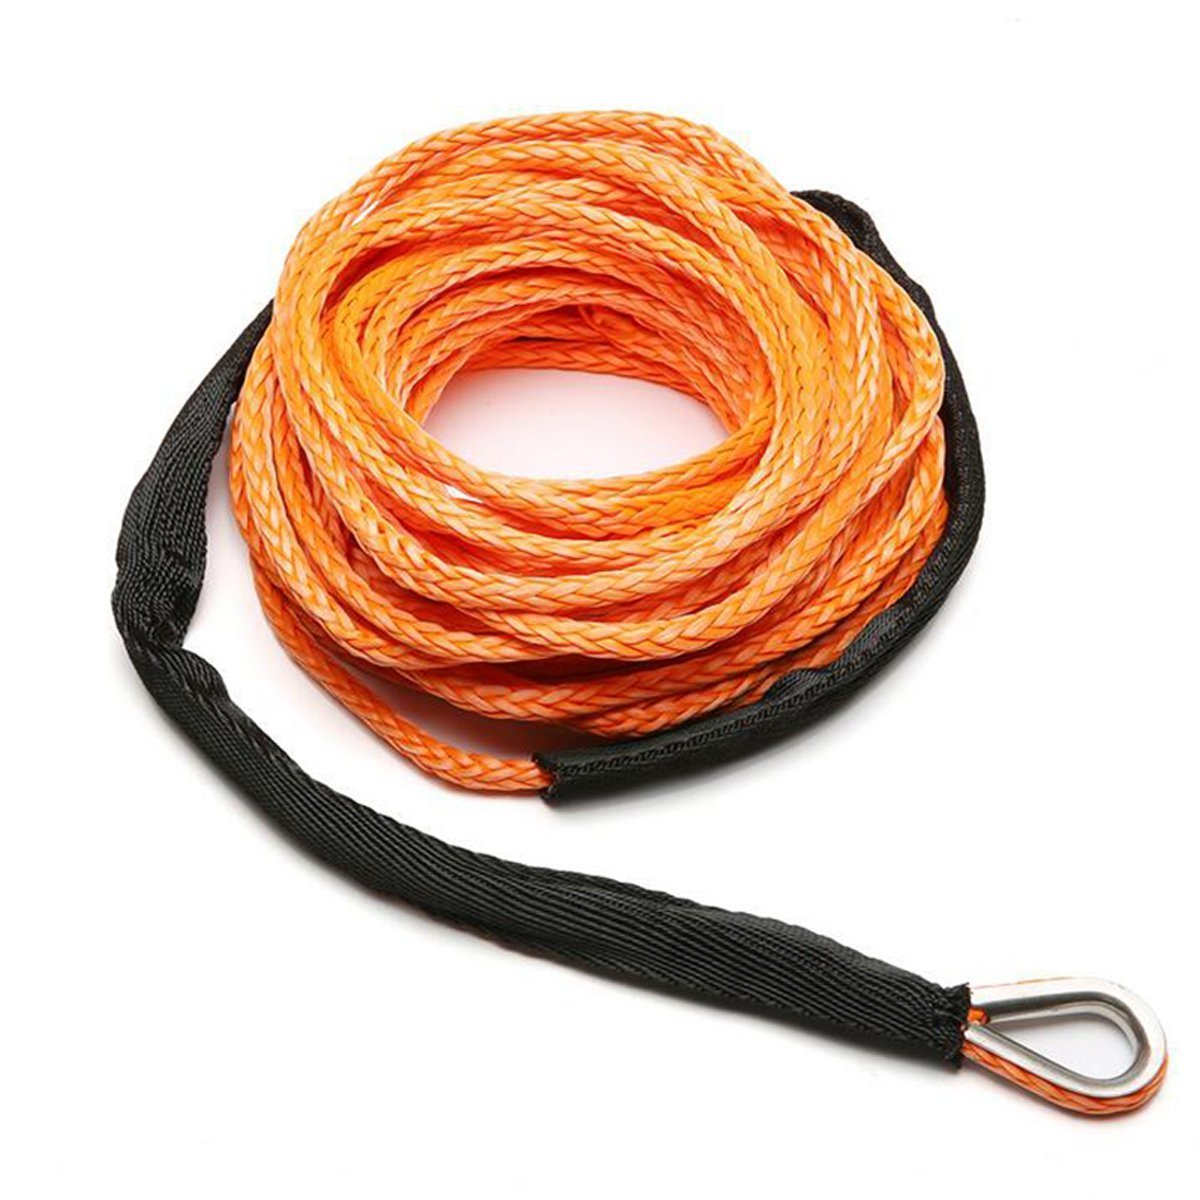 MOEBULB Car Synthetic Winch Rope Kit 5700+LBs 50'x1/4'' Winch Line Cable Sheath Winches ATV UTV SUV Truck Boat Ramsey Stainless Steel Thimble (Orange) by MOEBULB (Image #3)